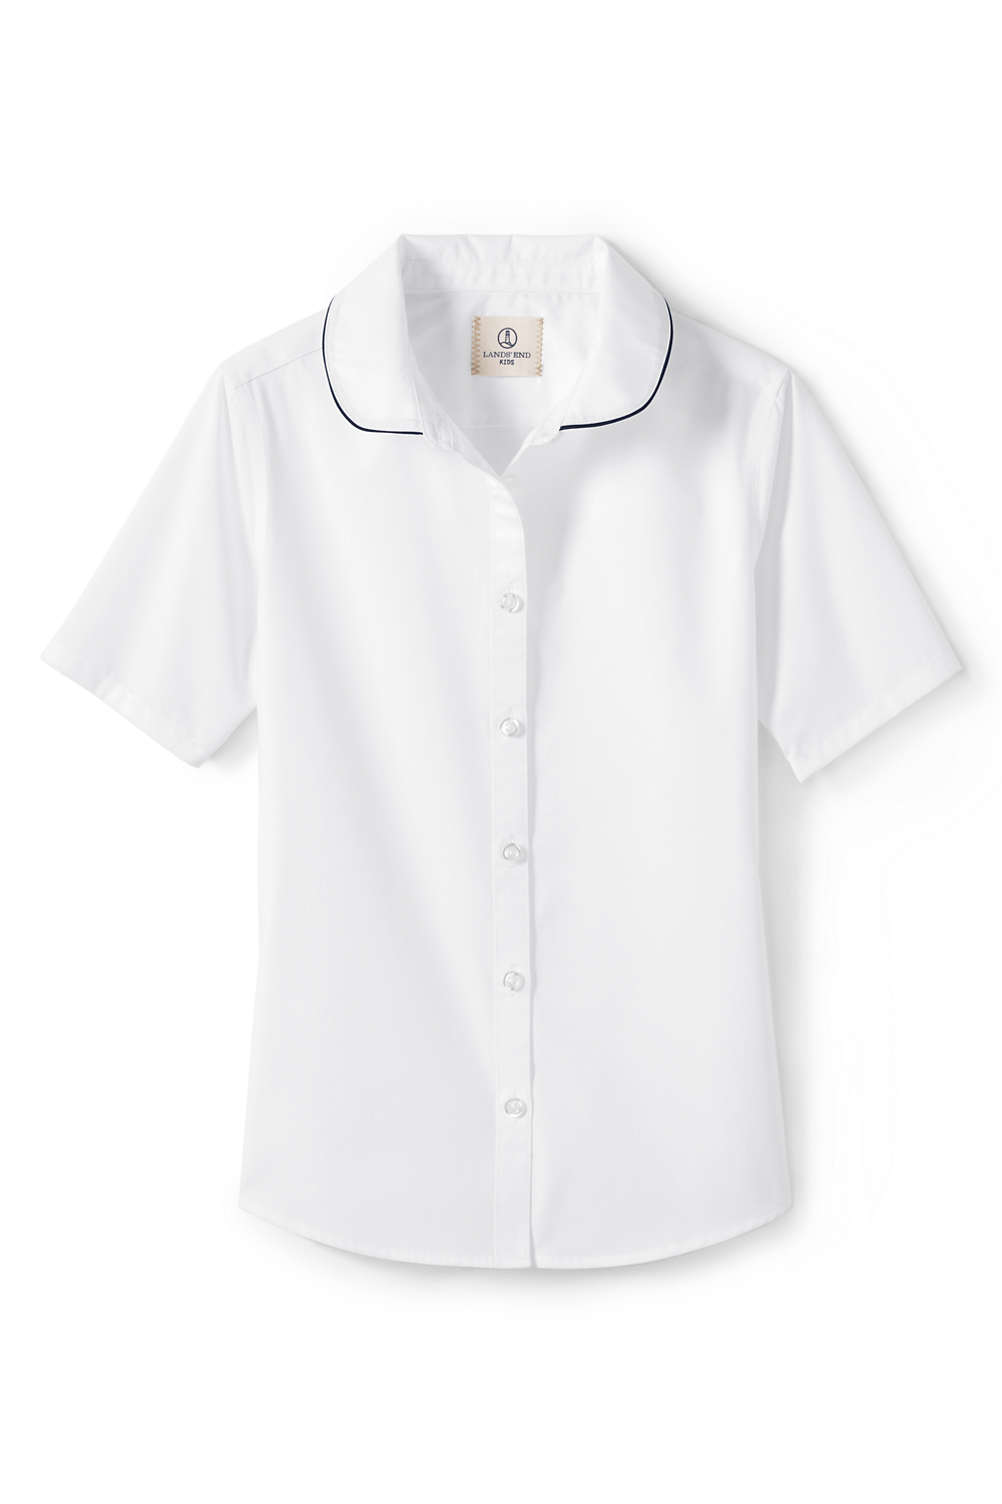 2250adc95e38 School Uniform Girls Short Sleeve Piped Collar Shirt from Lands  End